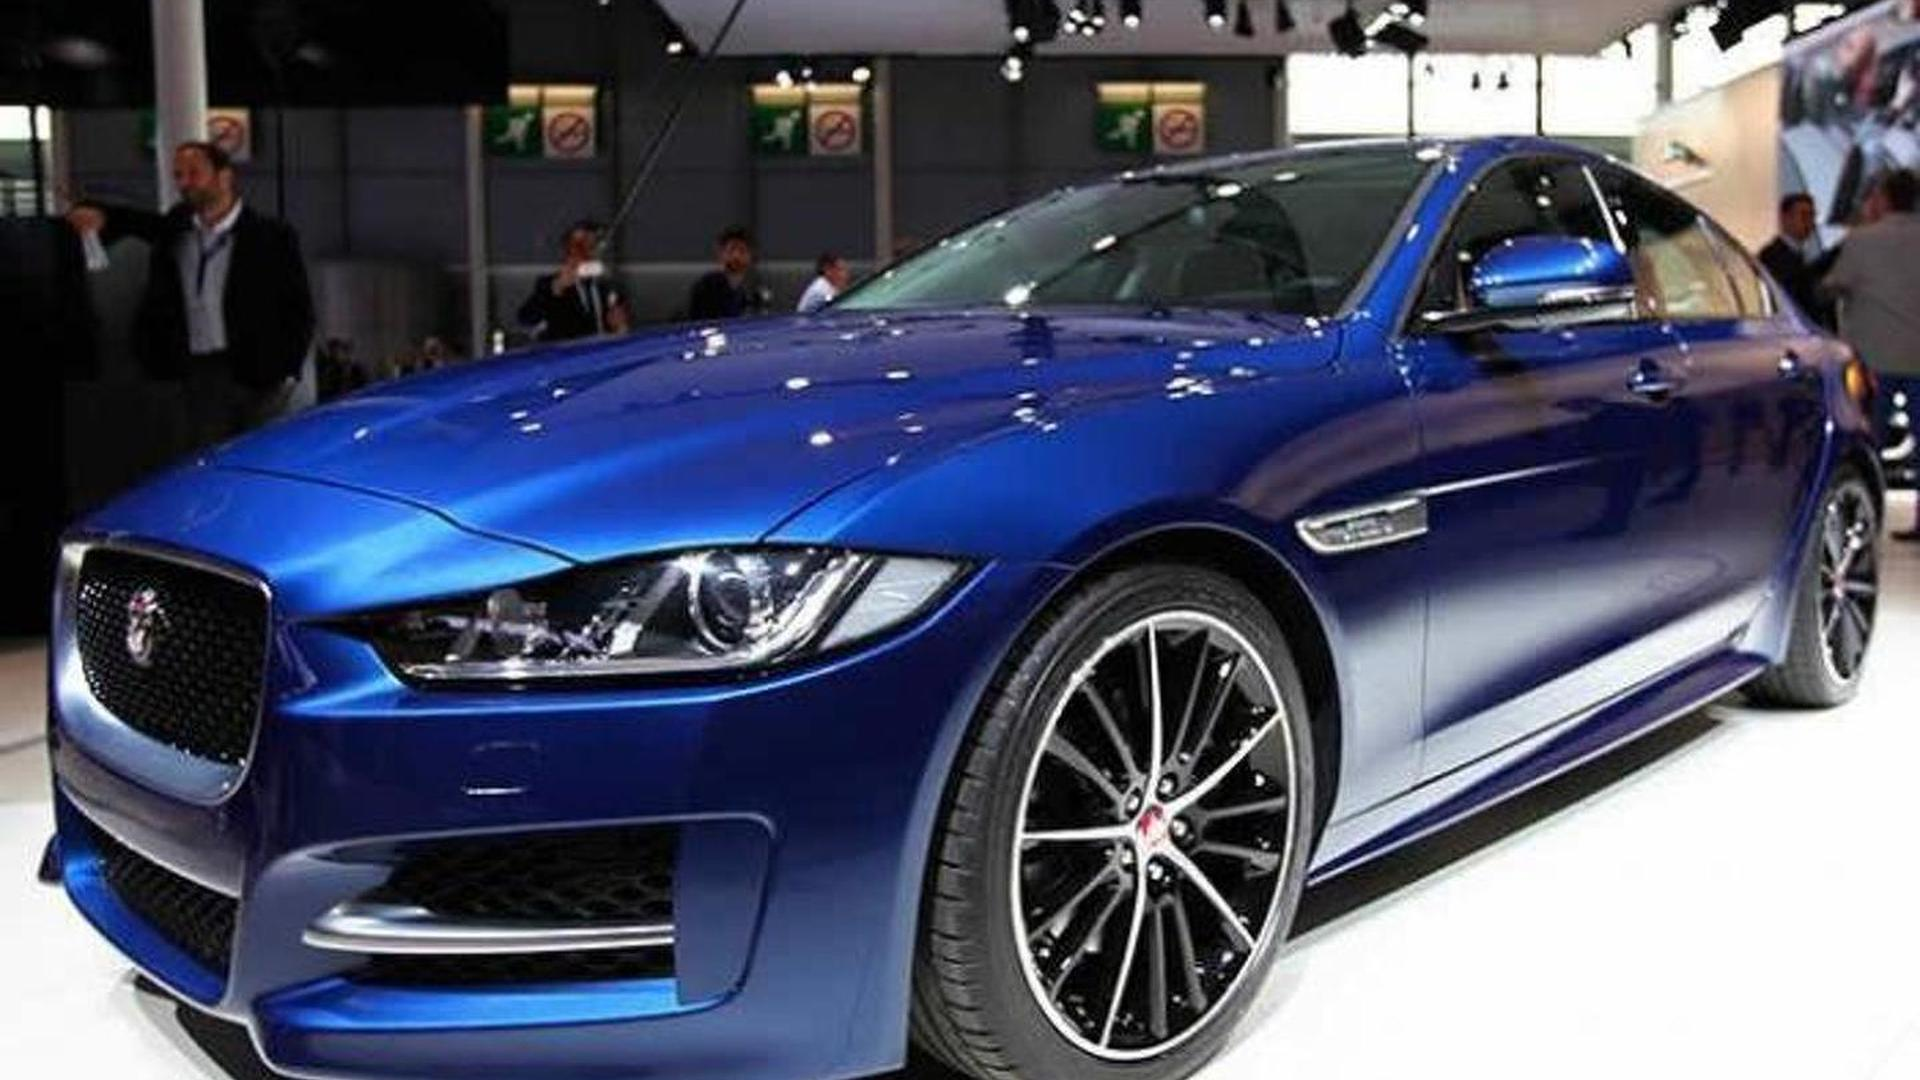 Jaguar hints at XE wagon, cabrio, coupe and long wheelbase versions